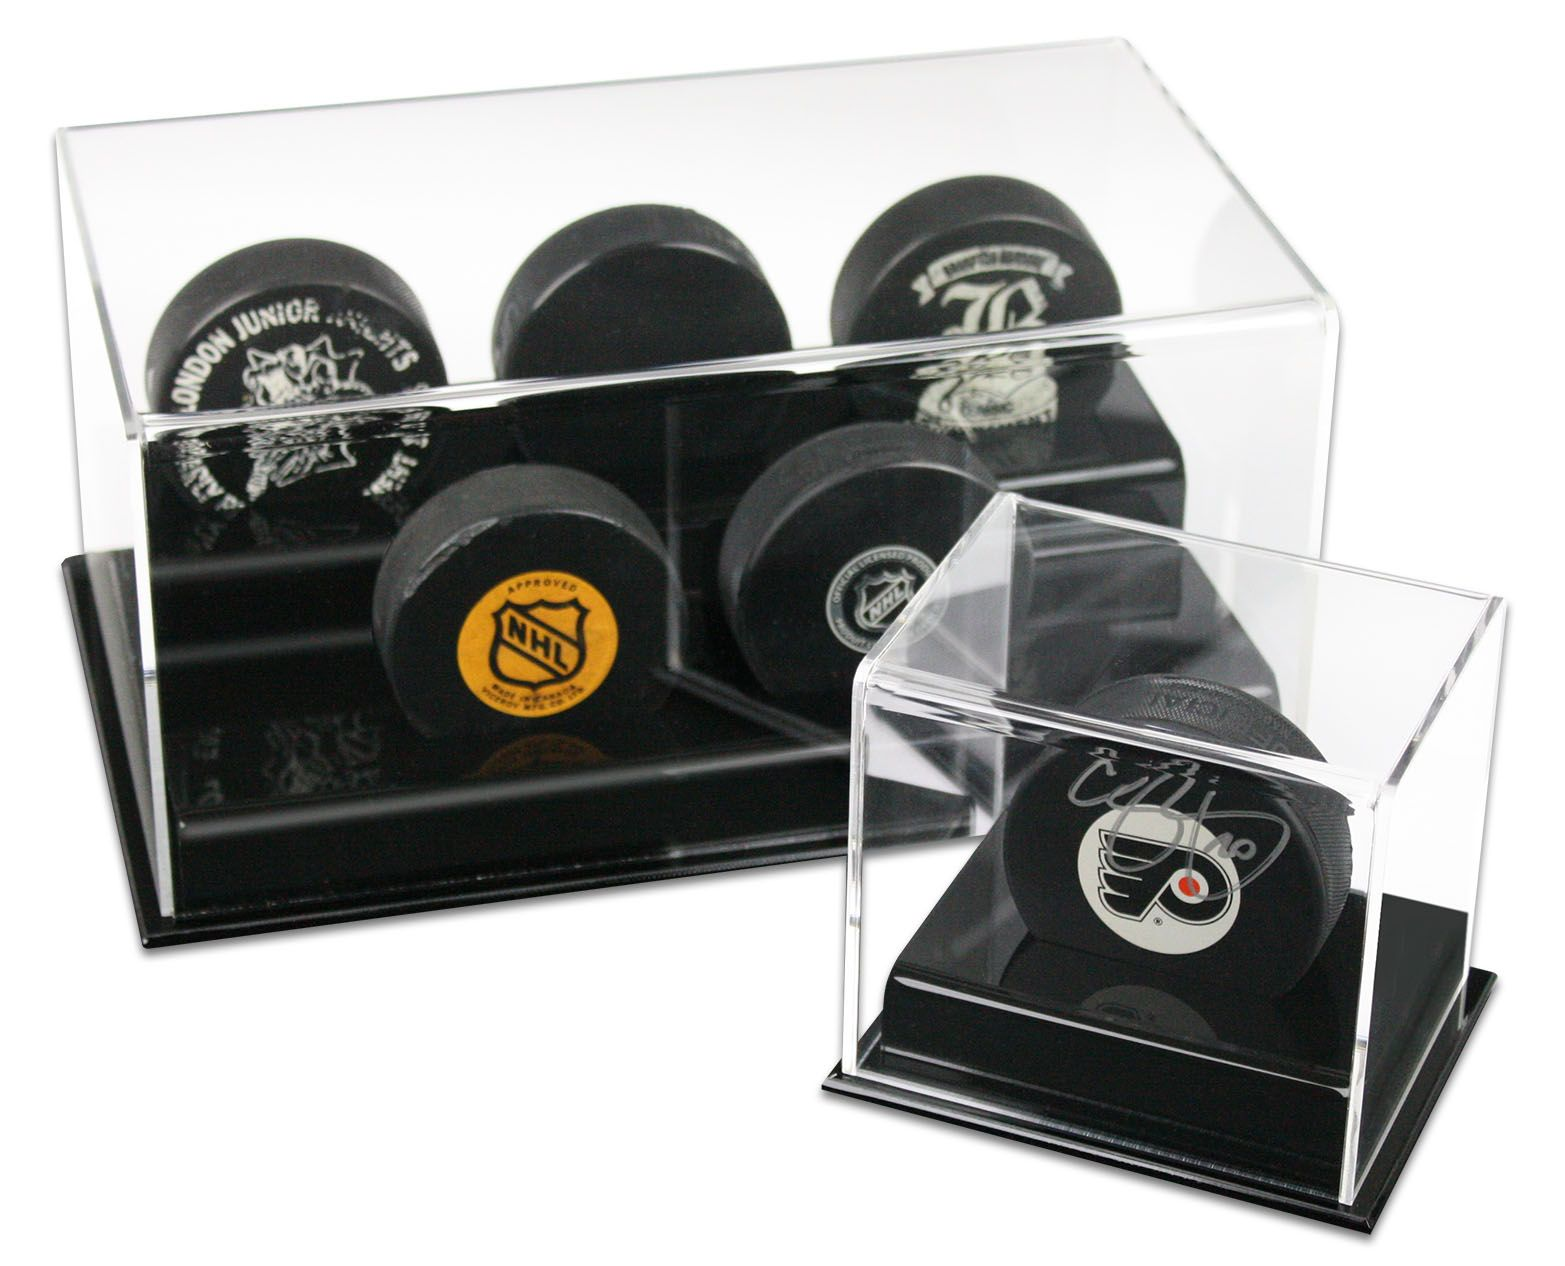 Hand Crafted Hockey Puck Display Case Puck By Hockeypuckholders Hockey Puck Display Display Case Hockey Puck